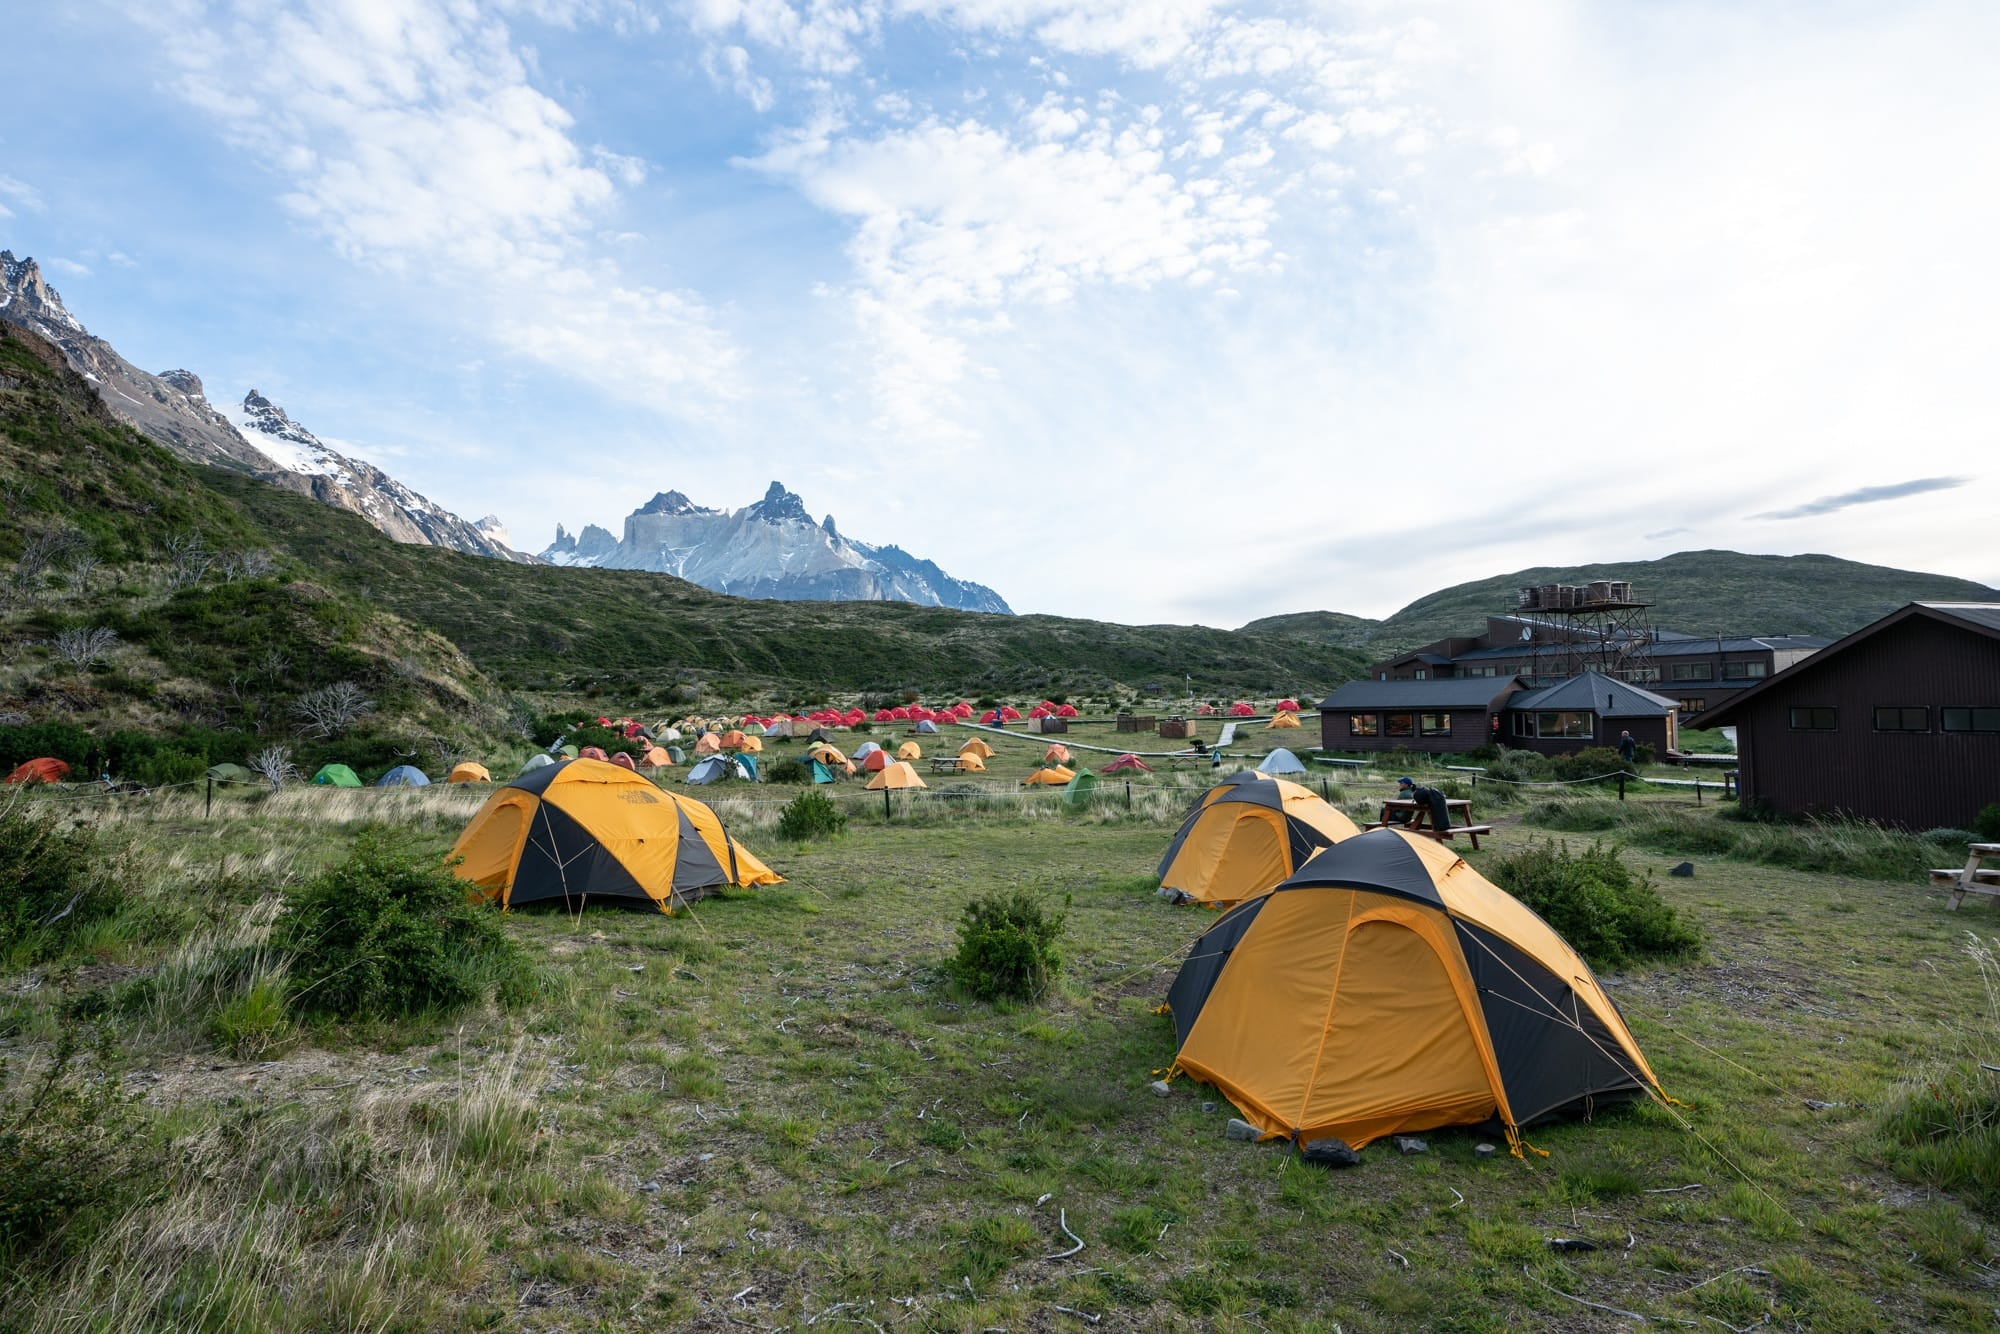 Camping at Refugio Paine Grande on the W Trek